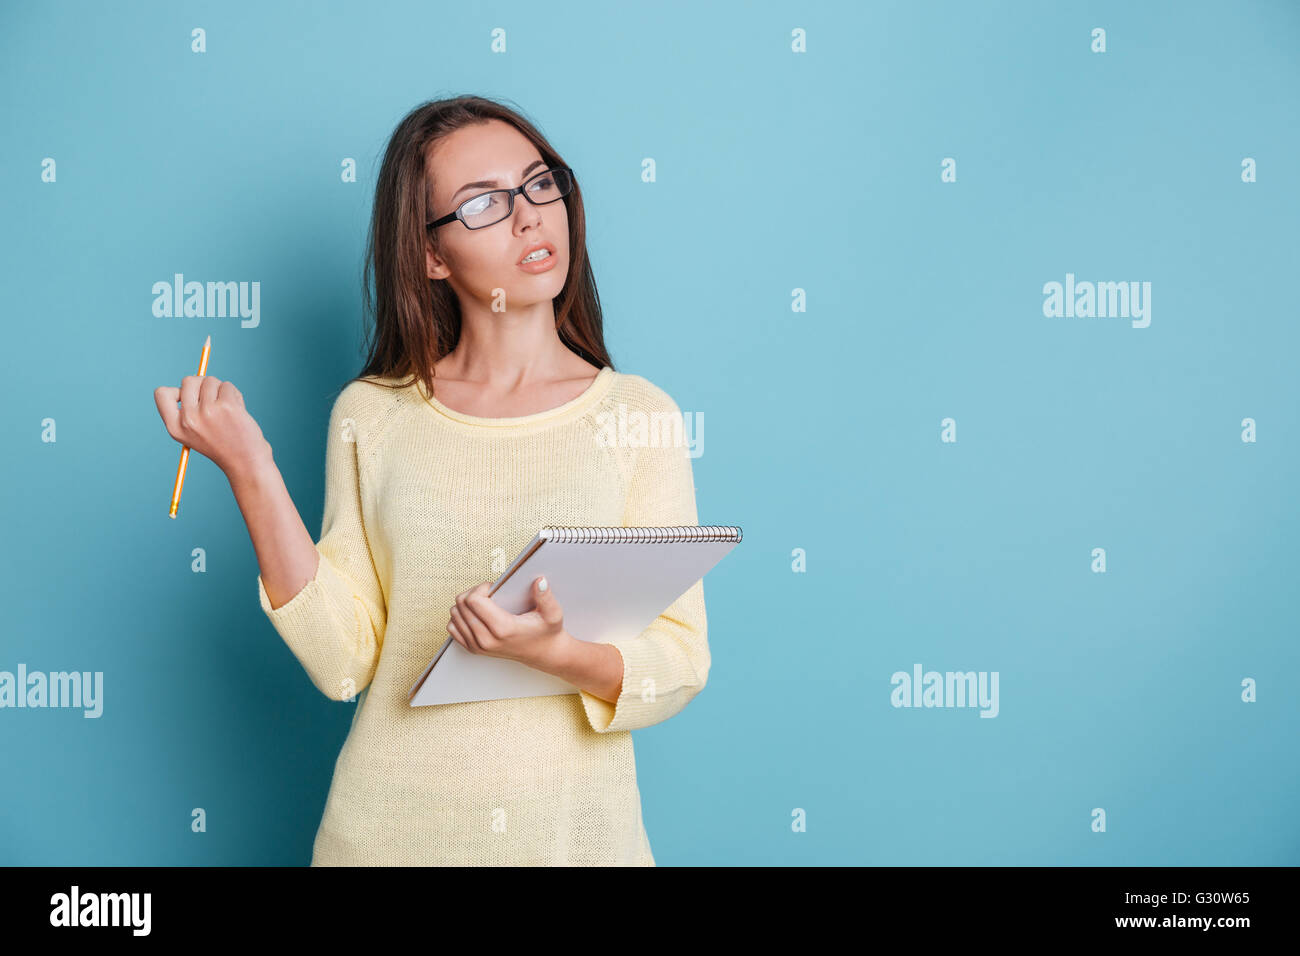 Young smart pensive girl thinking about something and holding colorful binders isolated on the blue background - Stock Image